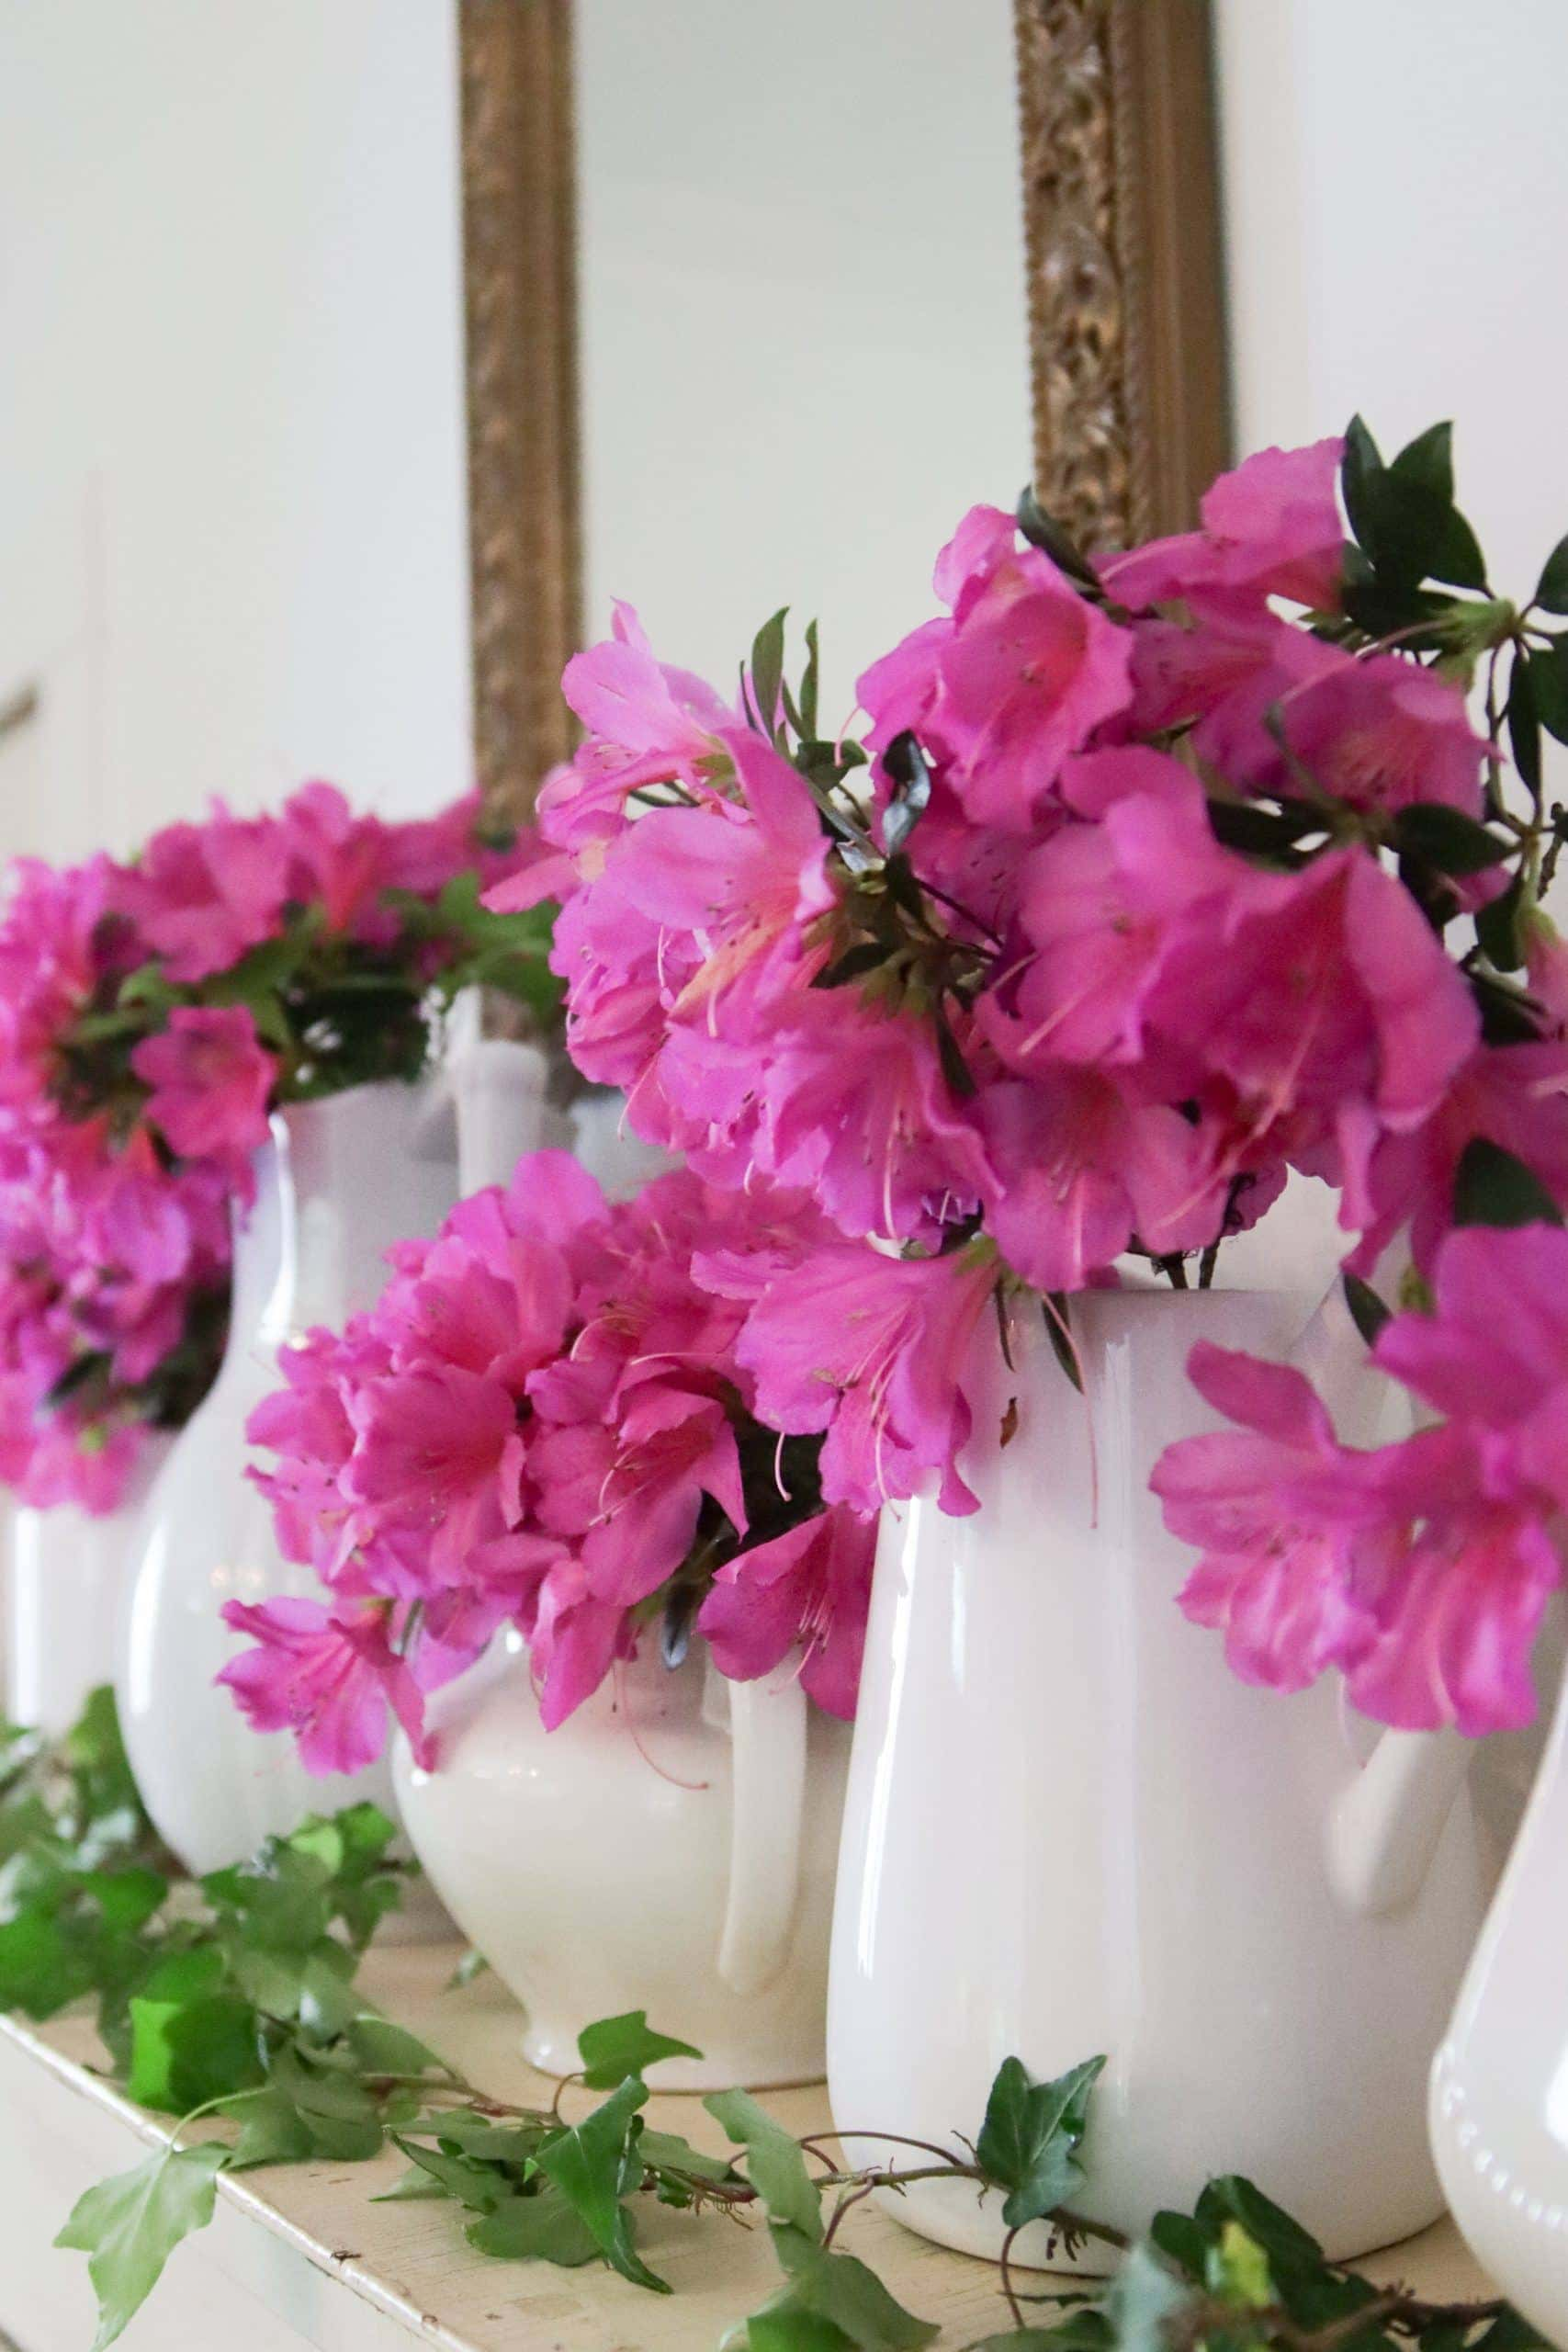 White pitchers with pink flowers on the spring dining room mantle.